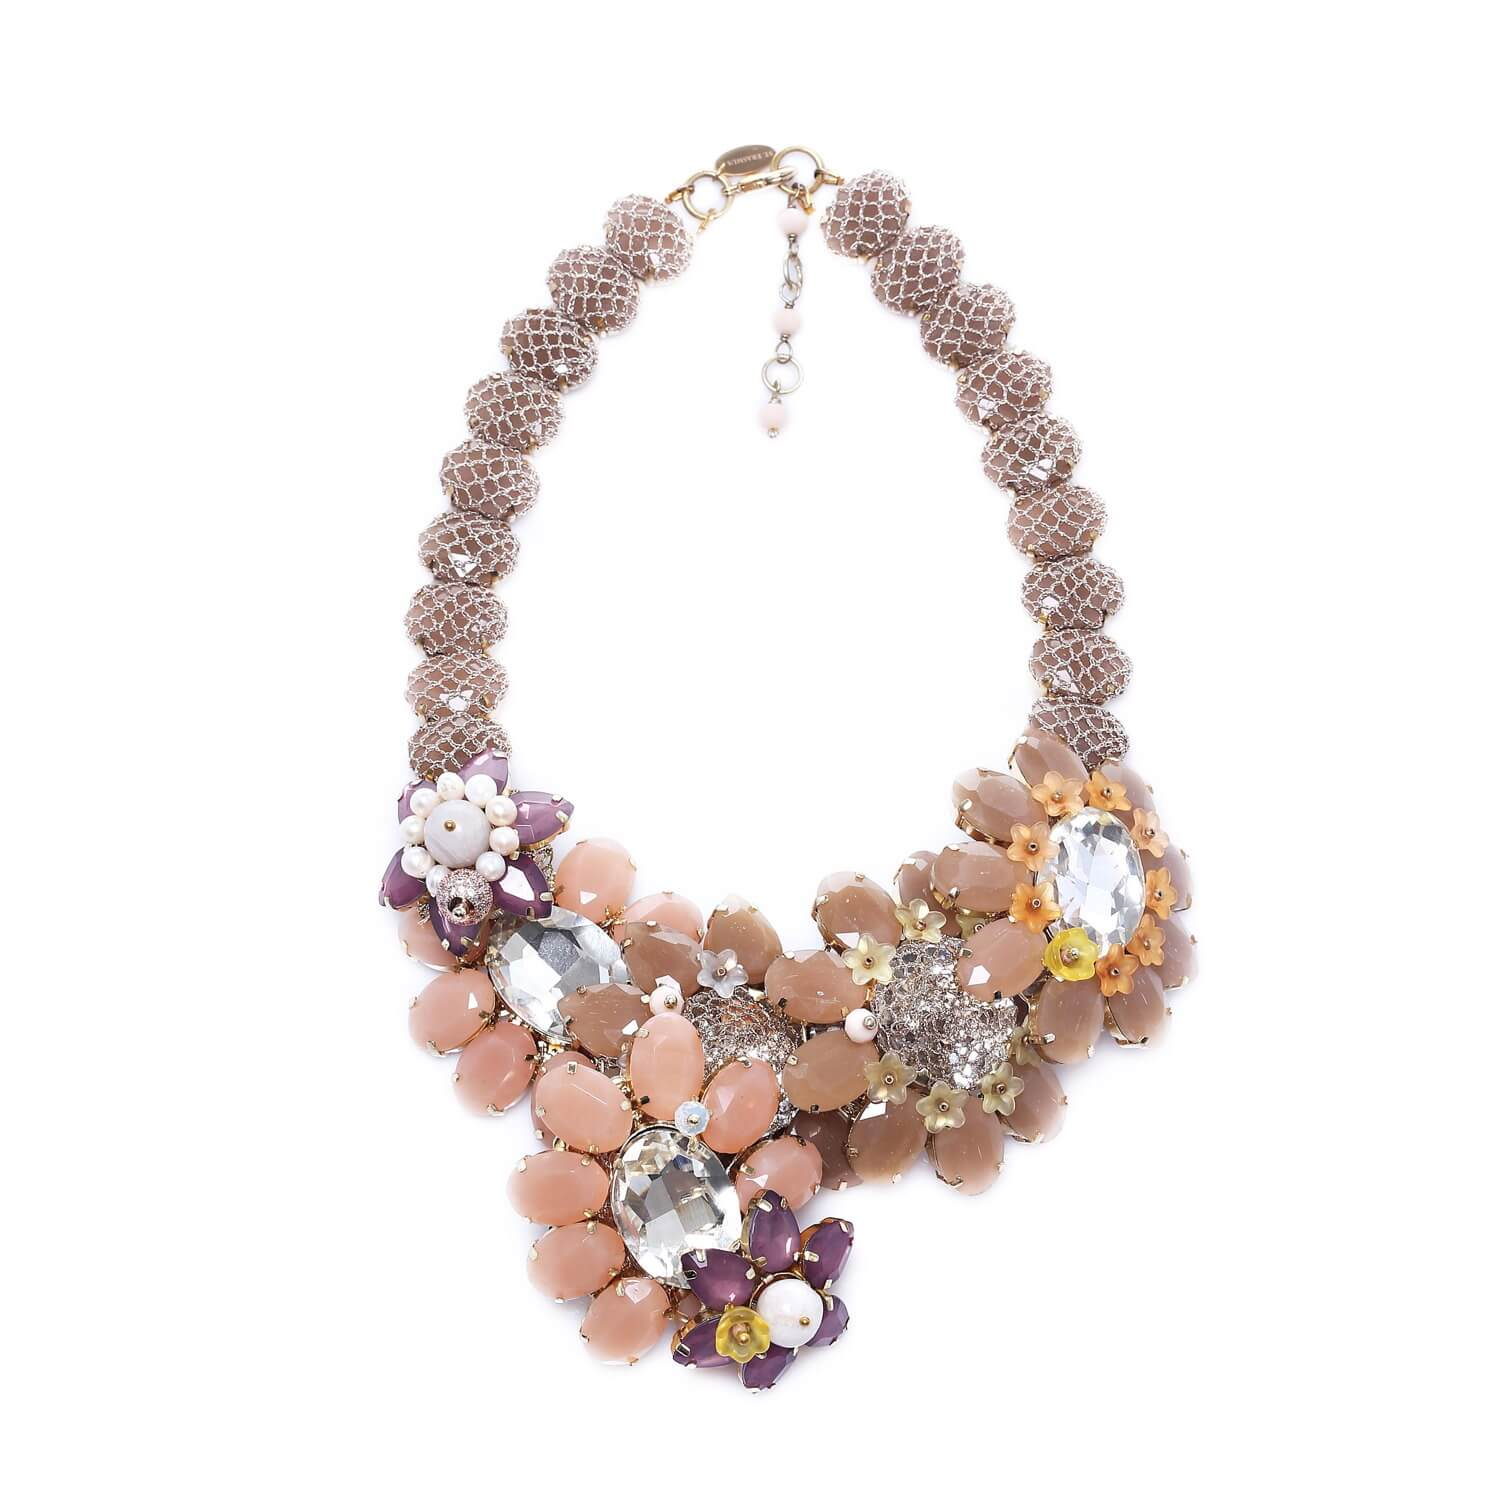 Venus Sun Flower Large Crystal Necklace - Pastel Blush Peach